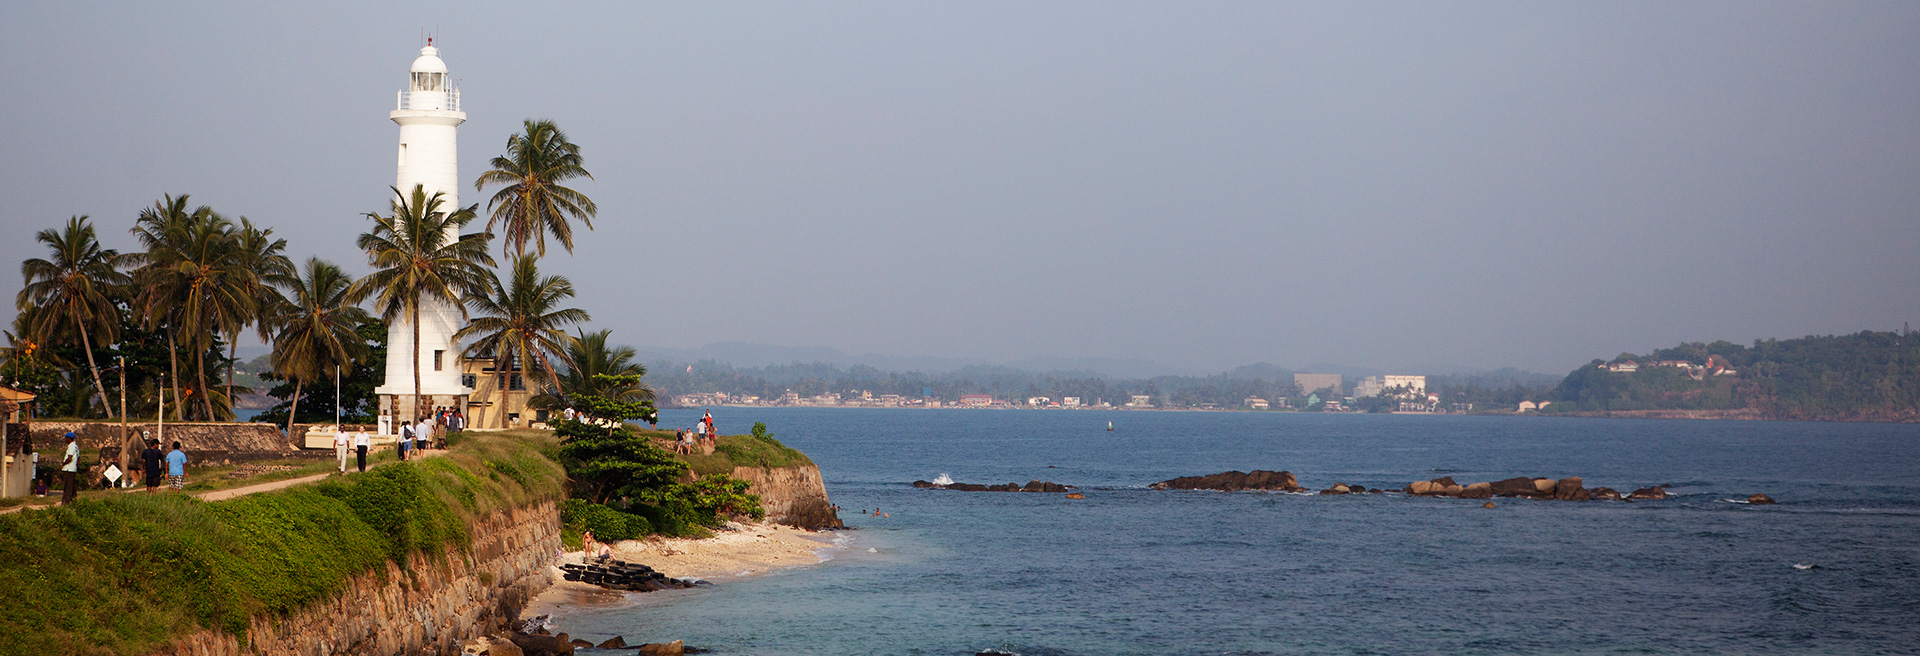 view of the galle lighthouse